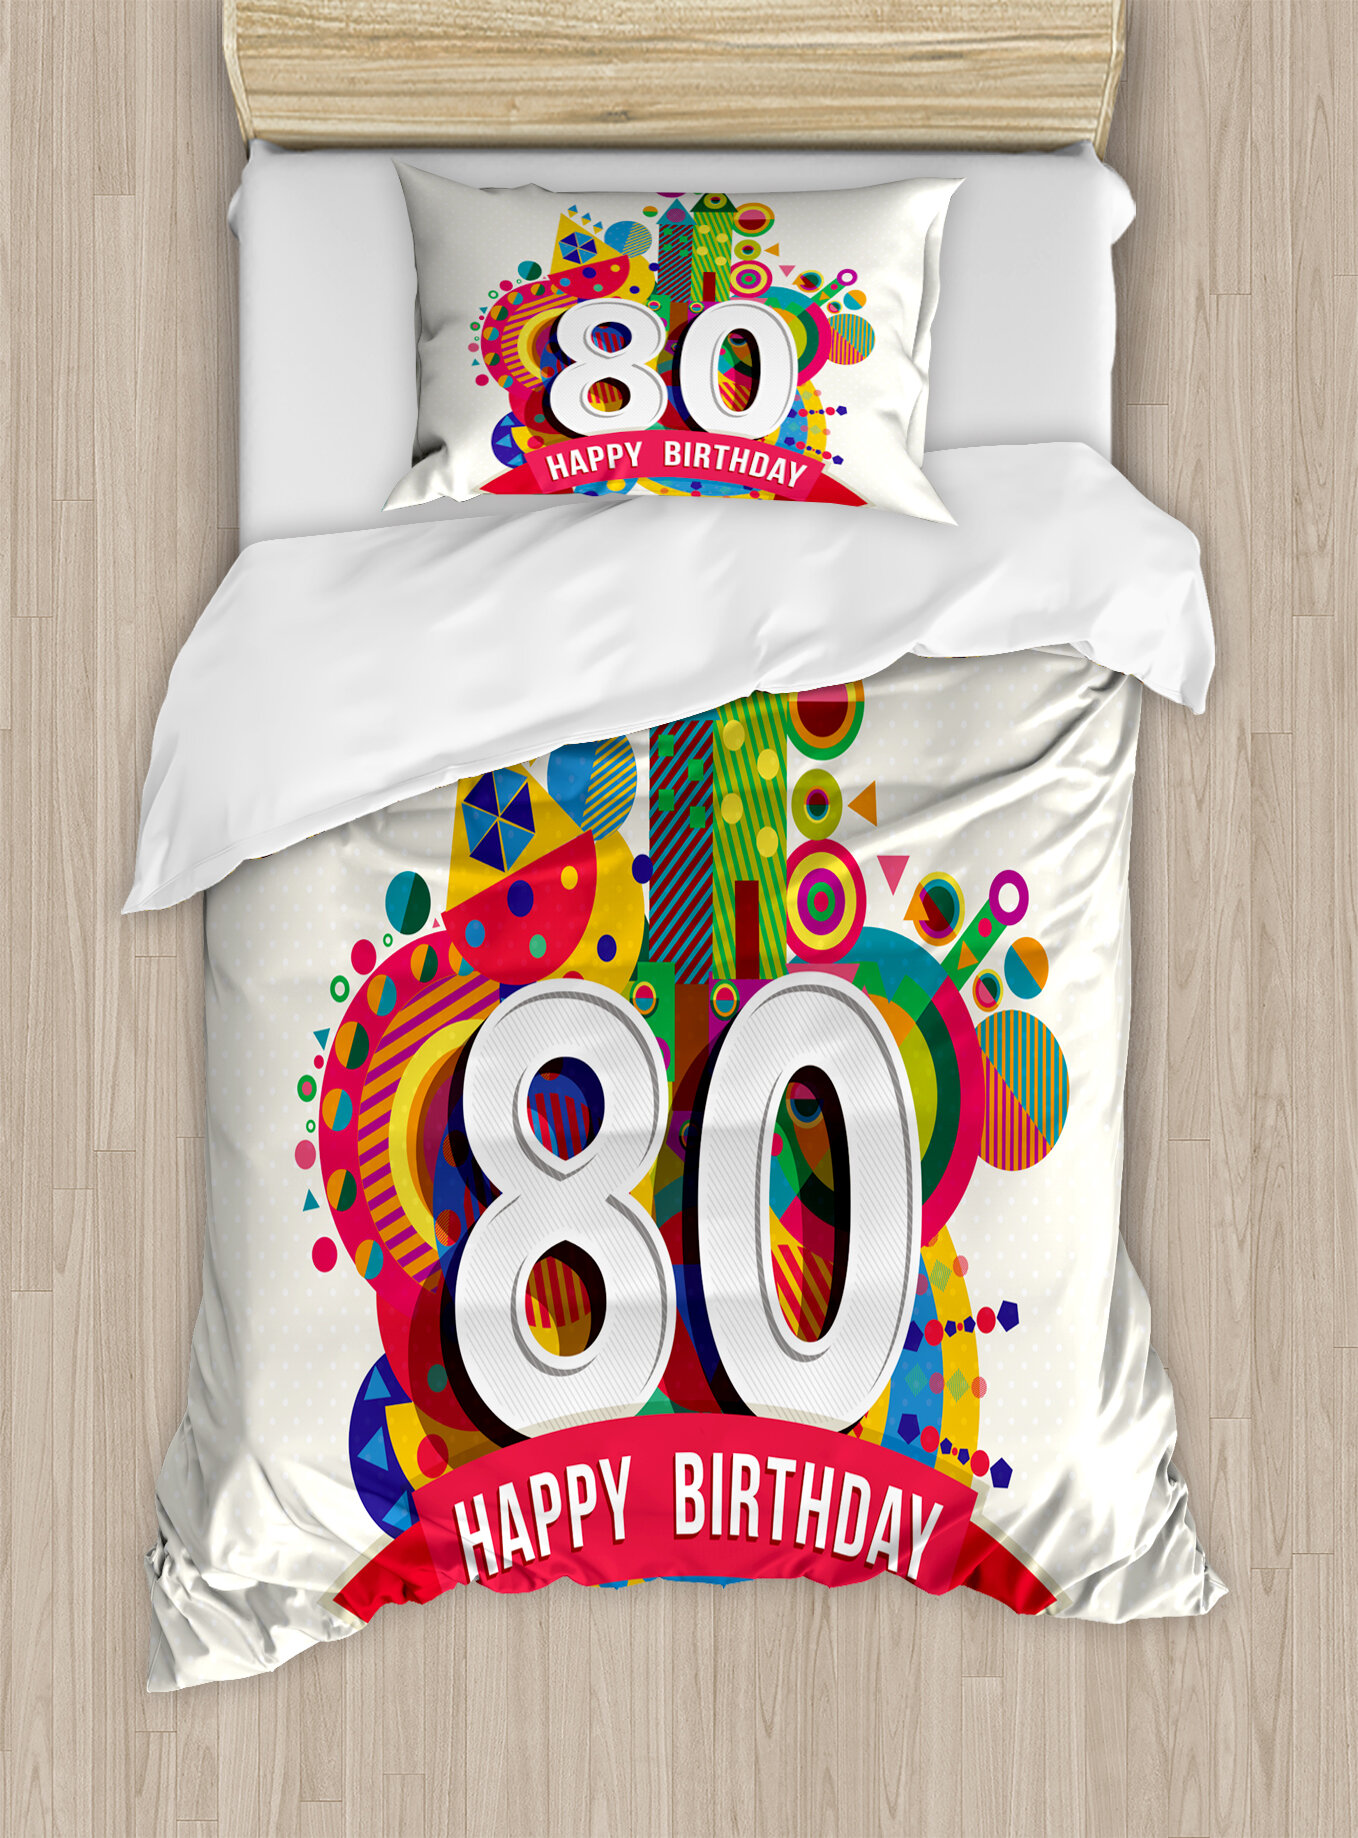 Ambesonne 80th Birthday Decorations Happy Ribbon With Geometric Castle Boat And Shapes Image Duvet Cover Set